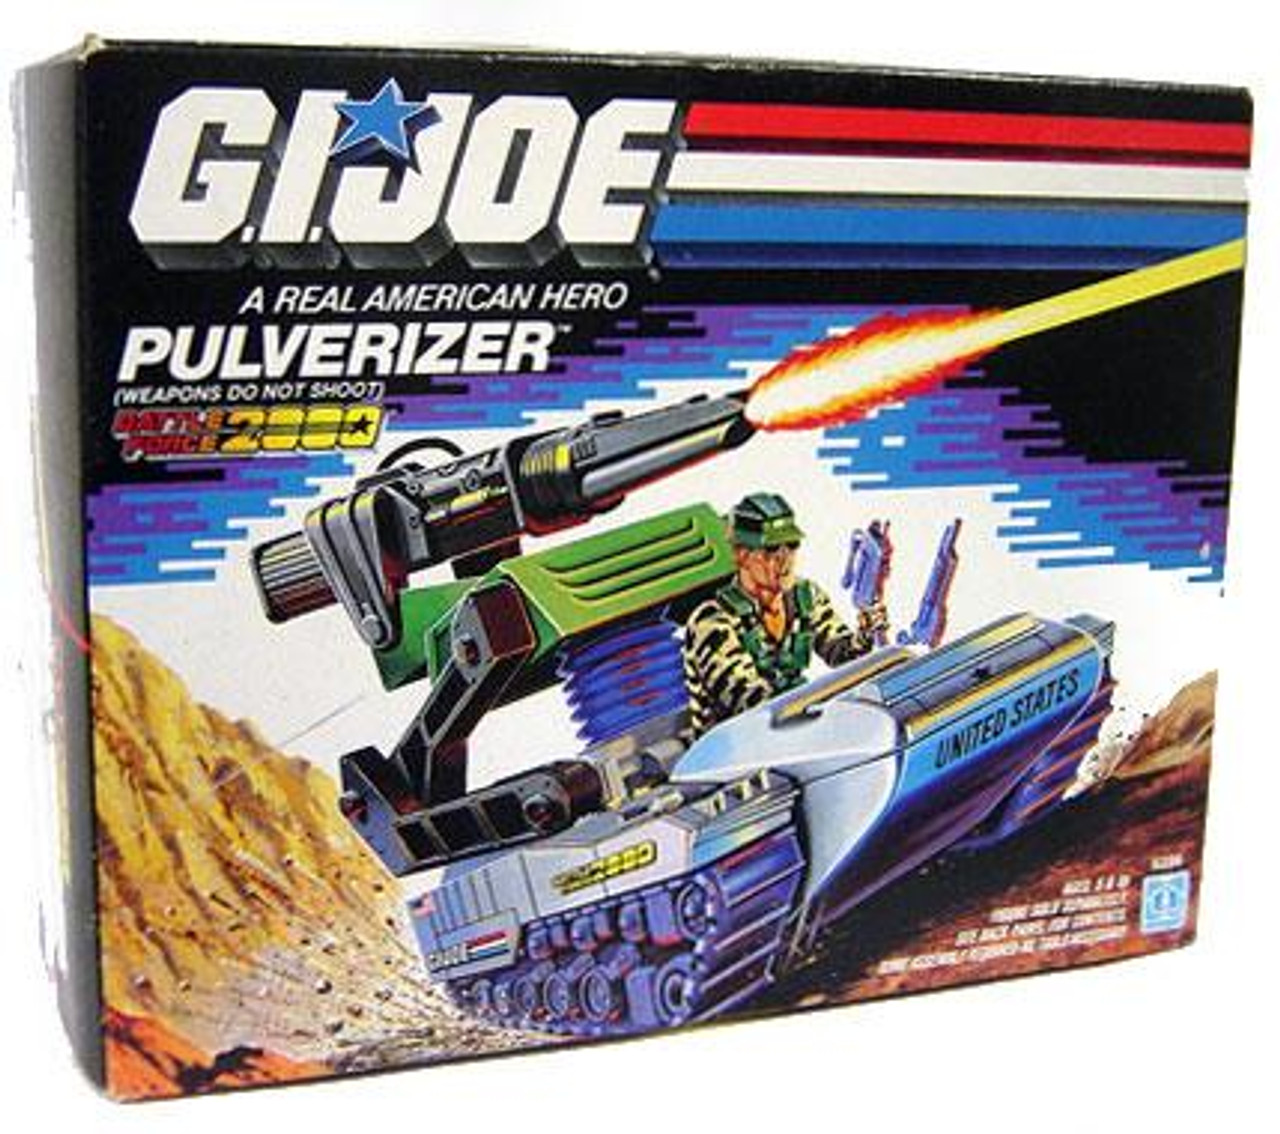 GI Joe Vintage Pulverizer Action Figure Vehicle